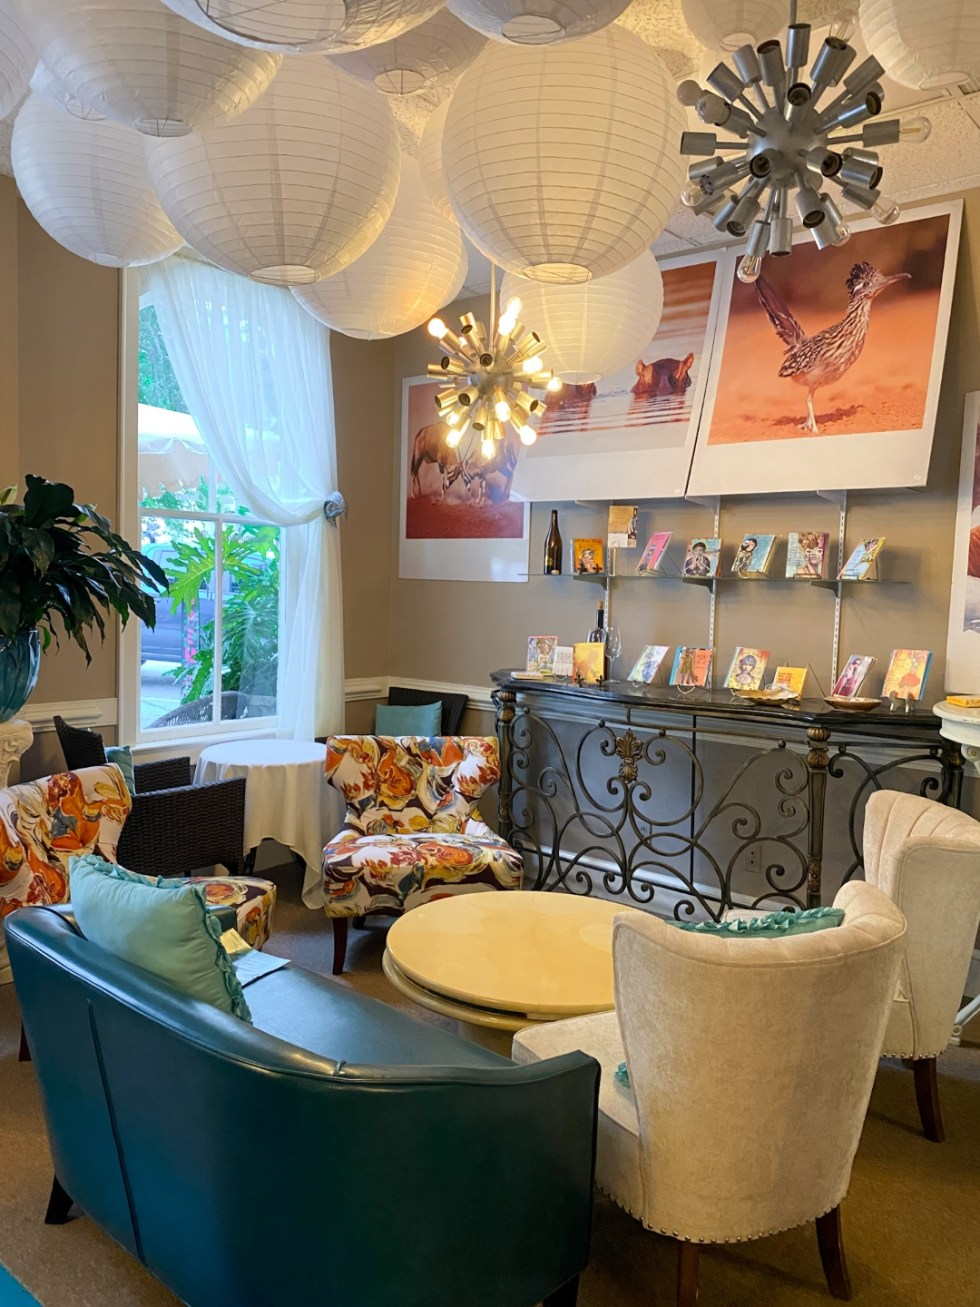 Top 10 Best Things to Do in Edenton, NC: A Complete Travel Guide - I'm Fixin' To - @imfixintoblog | Edenton Travel Guide by popular NC travel guid, I'm Fixin' To: image of a sitting are with white paper lanterns, blue leather couch, and sitting chairs.